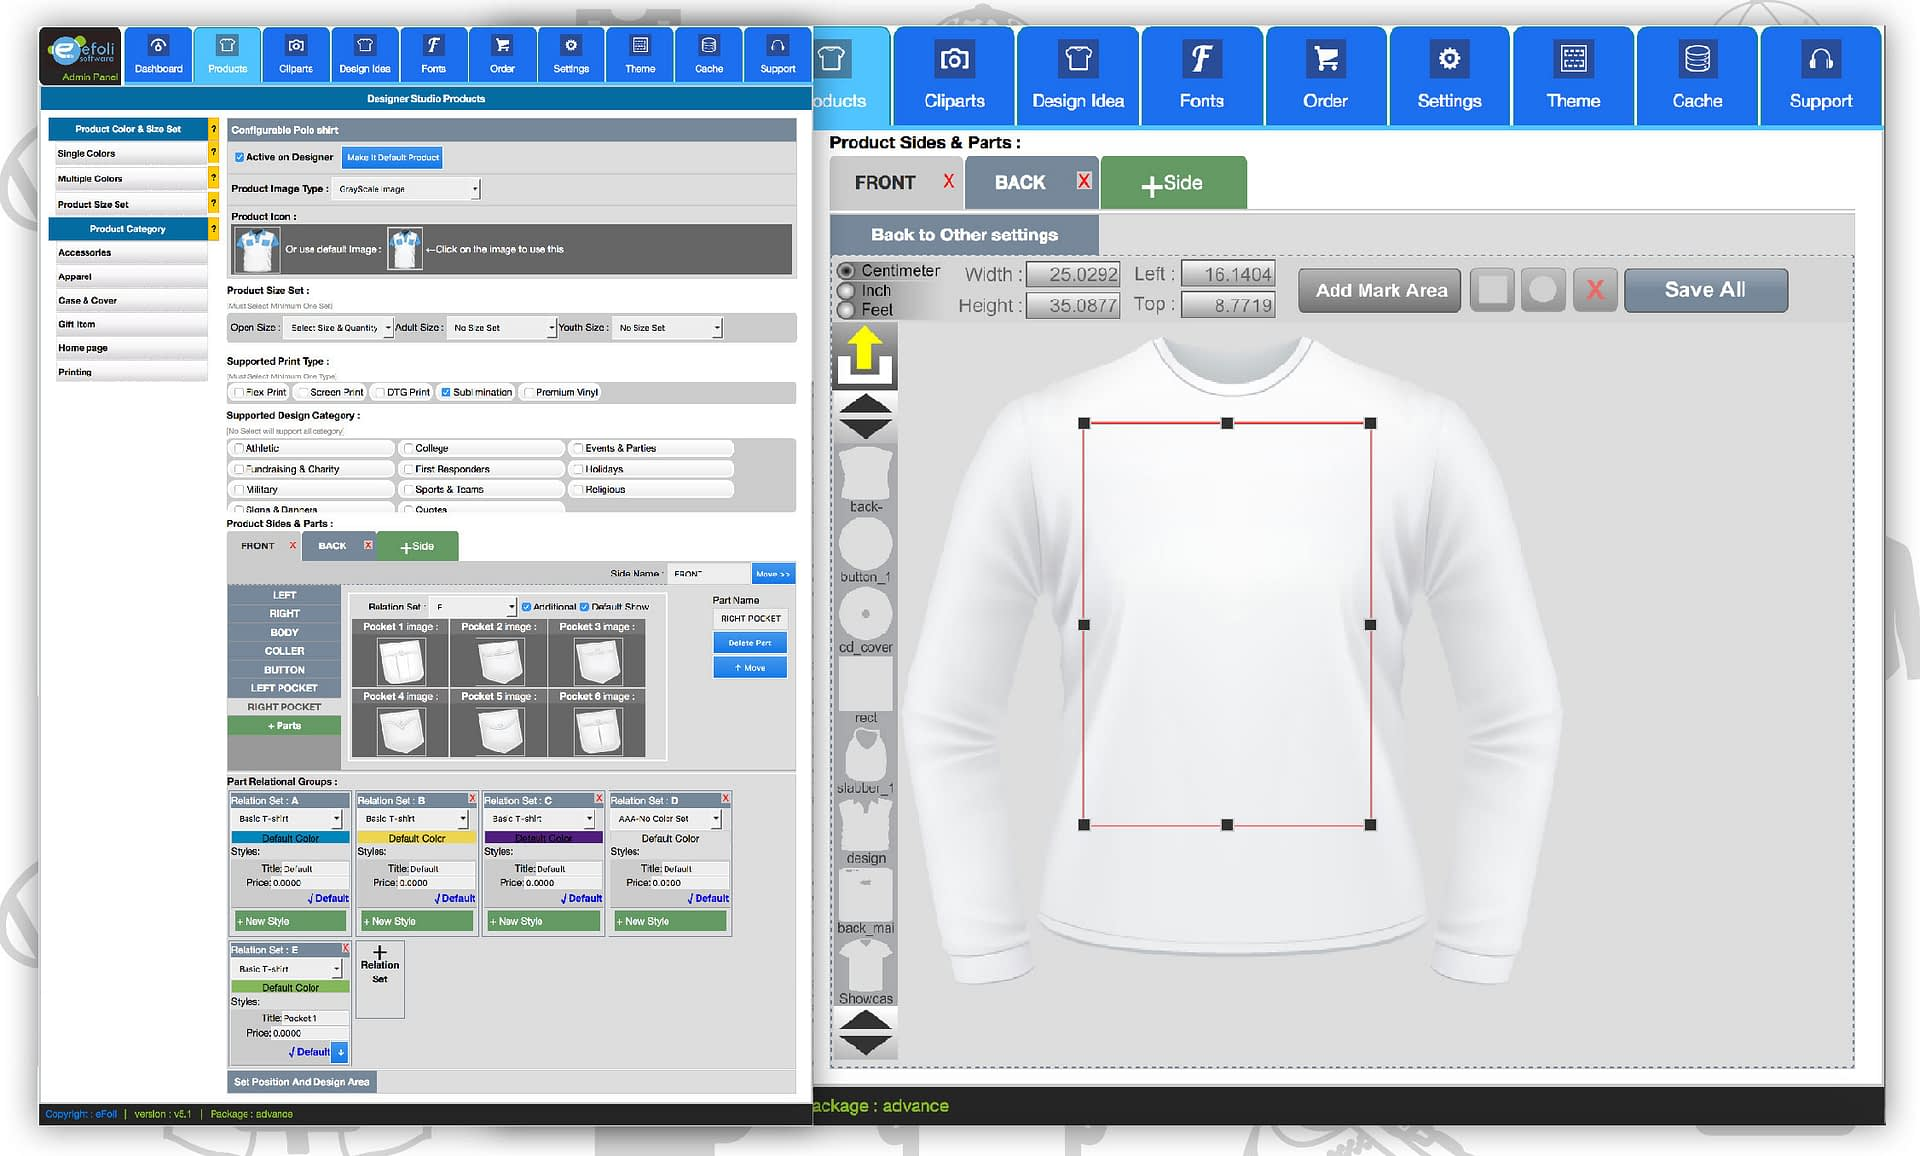 T Shirt Design Tool For Ecommerce Product Customization Software For Print Shops